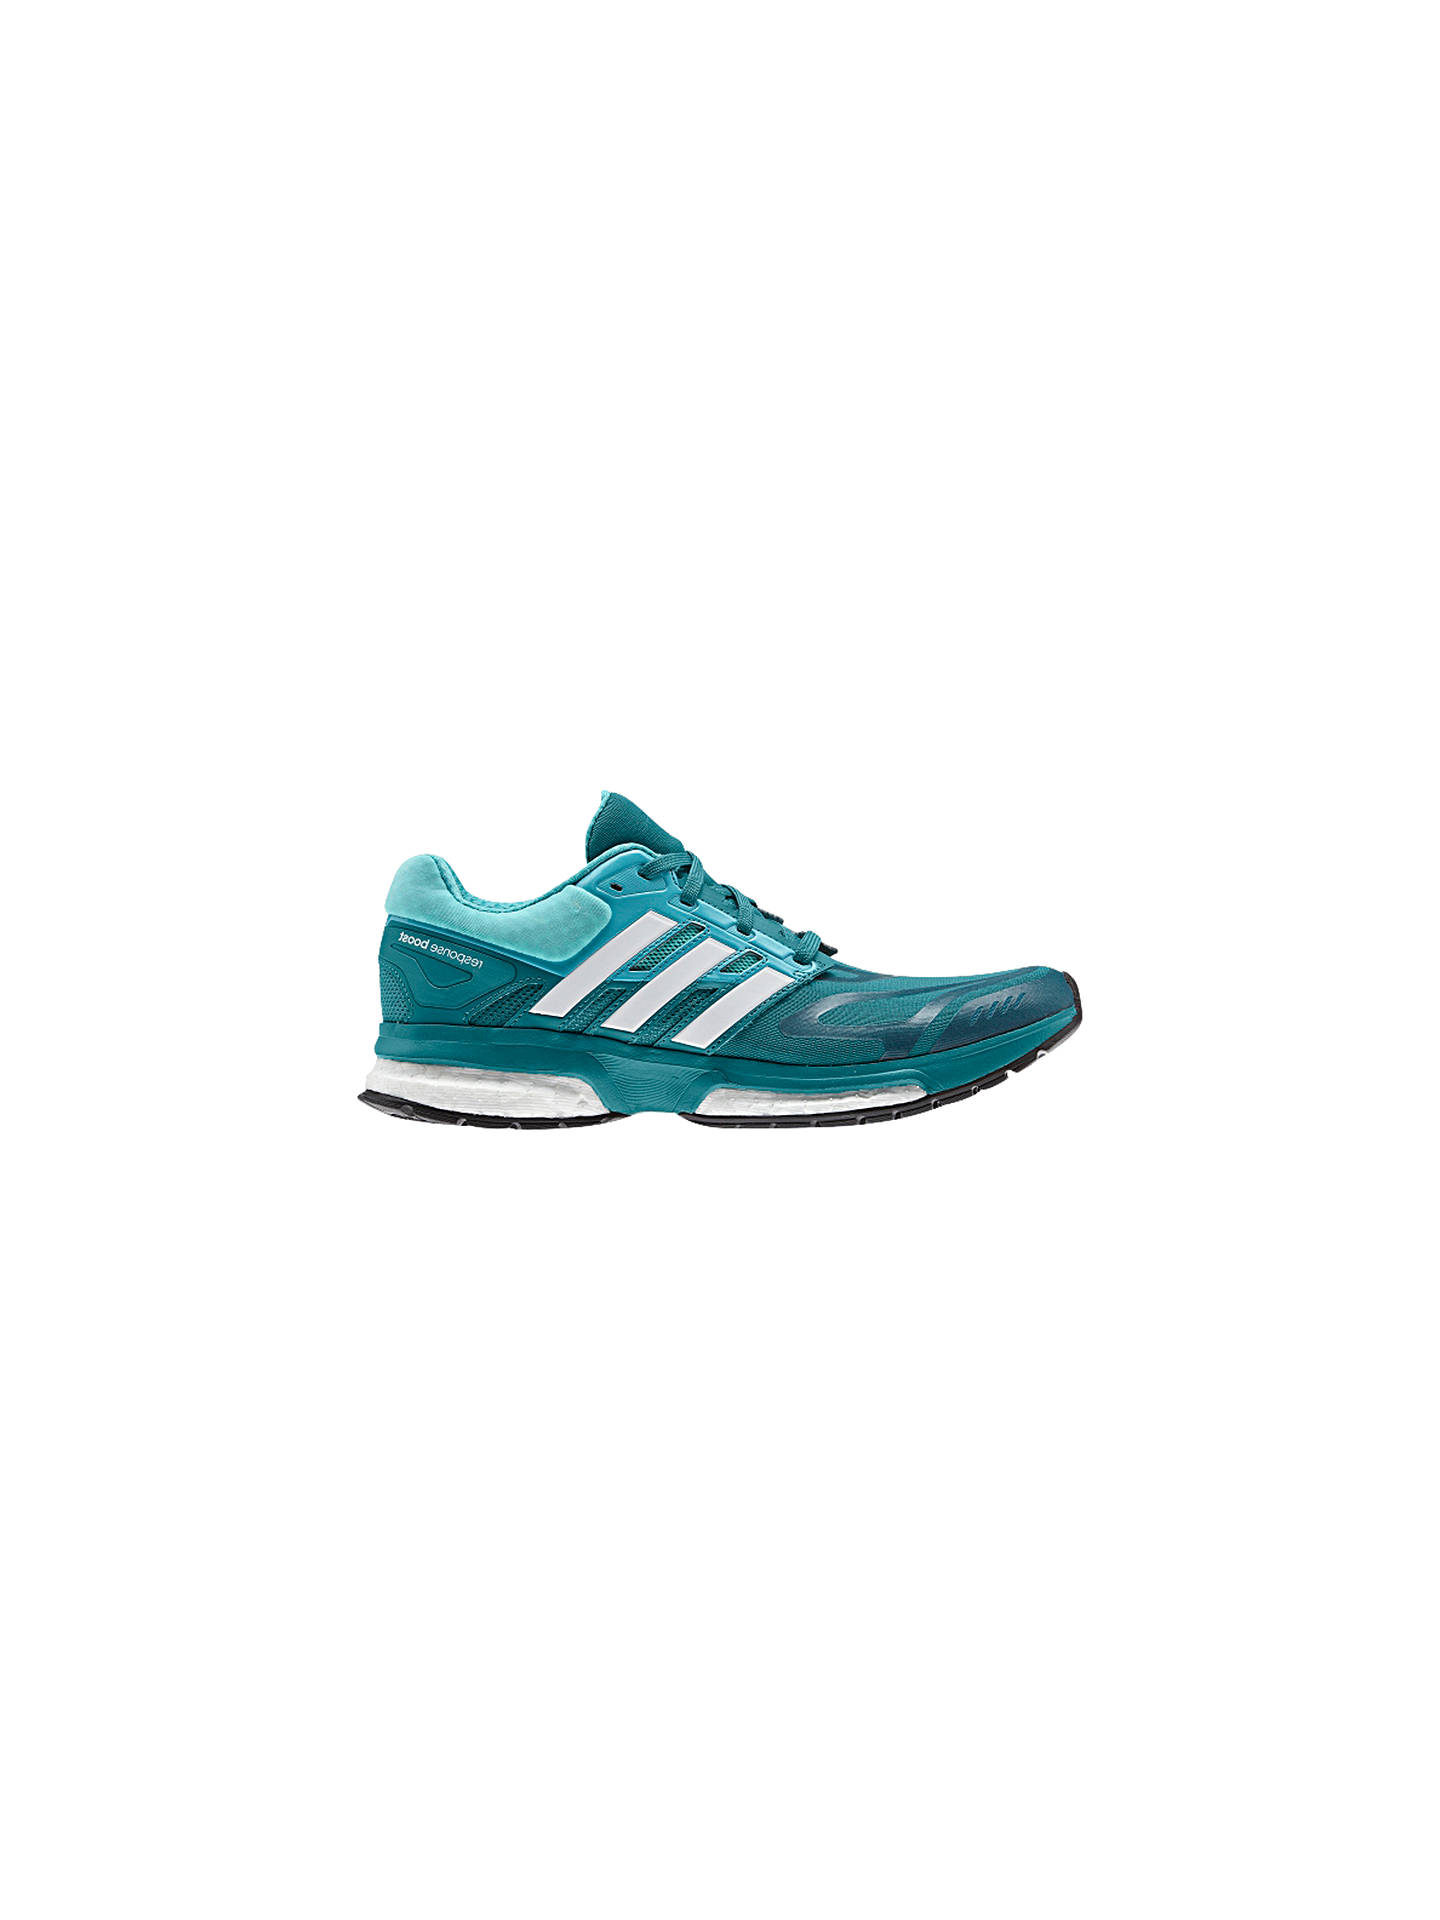 3f629d1ffe30 Adidas Response Boost Women s Running Trainers at John Lewis   Partners